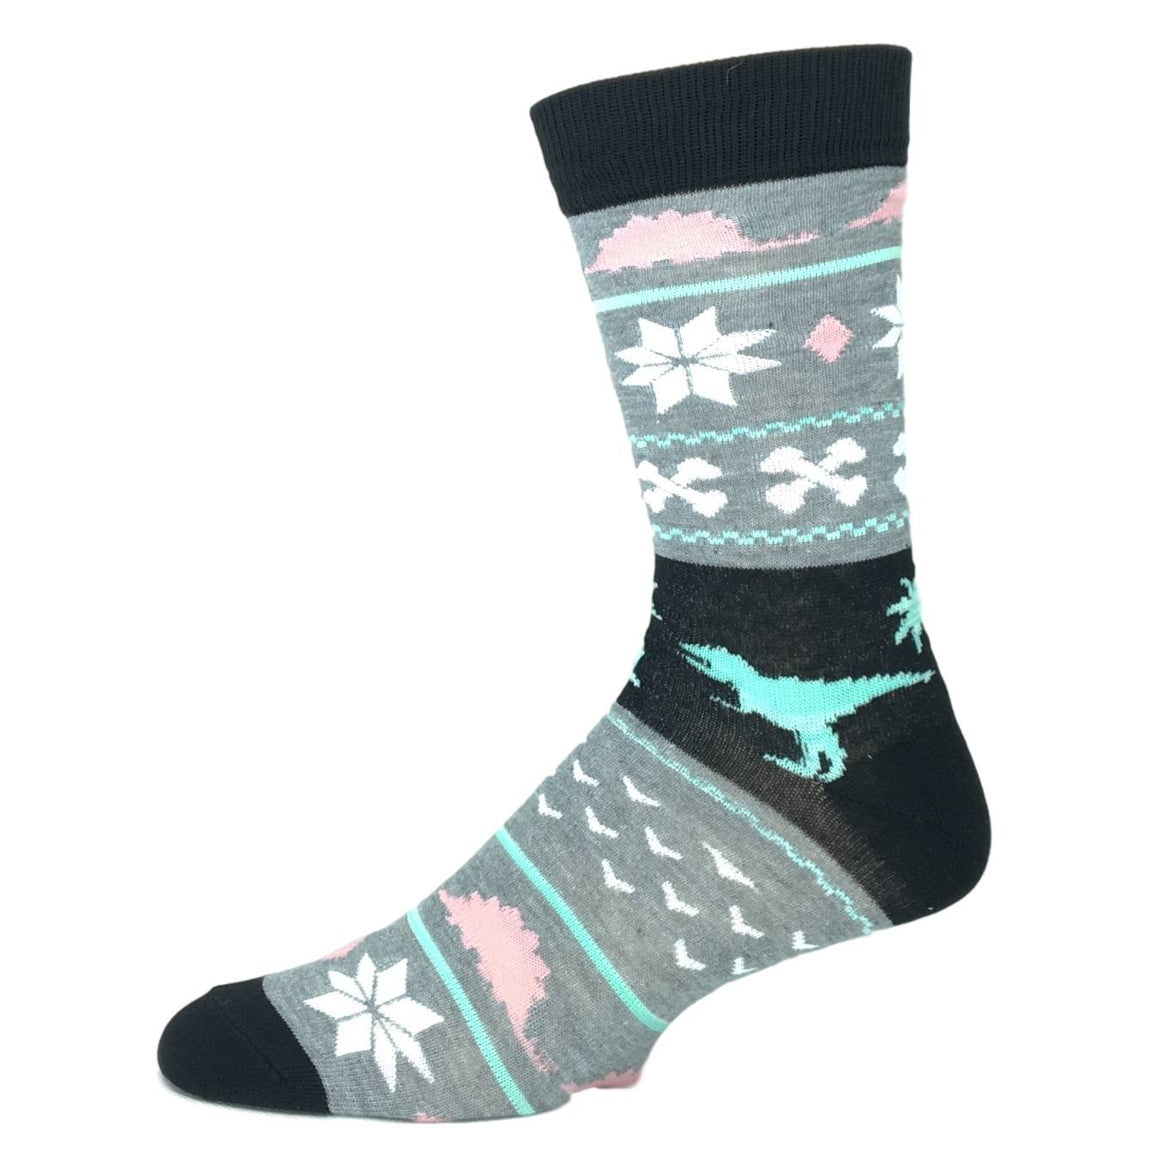 Dinosaur Christmas Socks - The Sock Spot